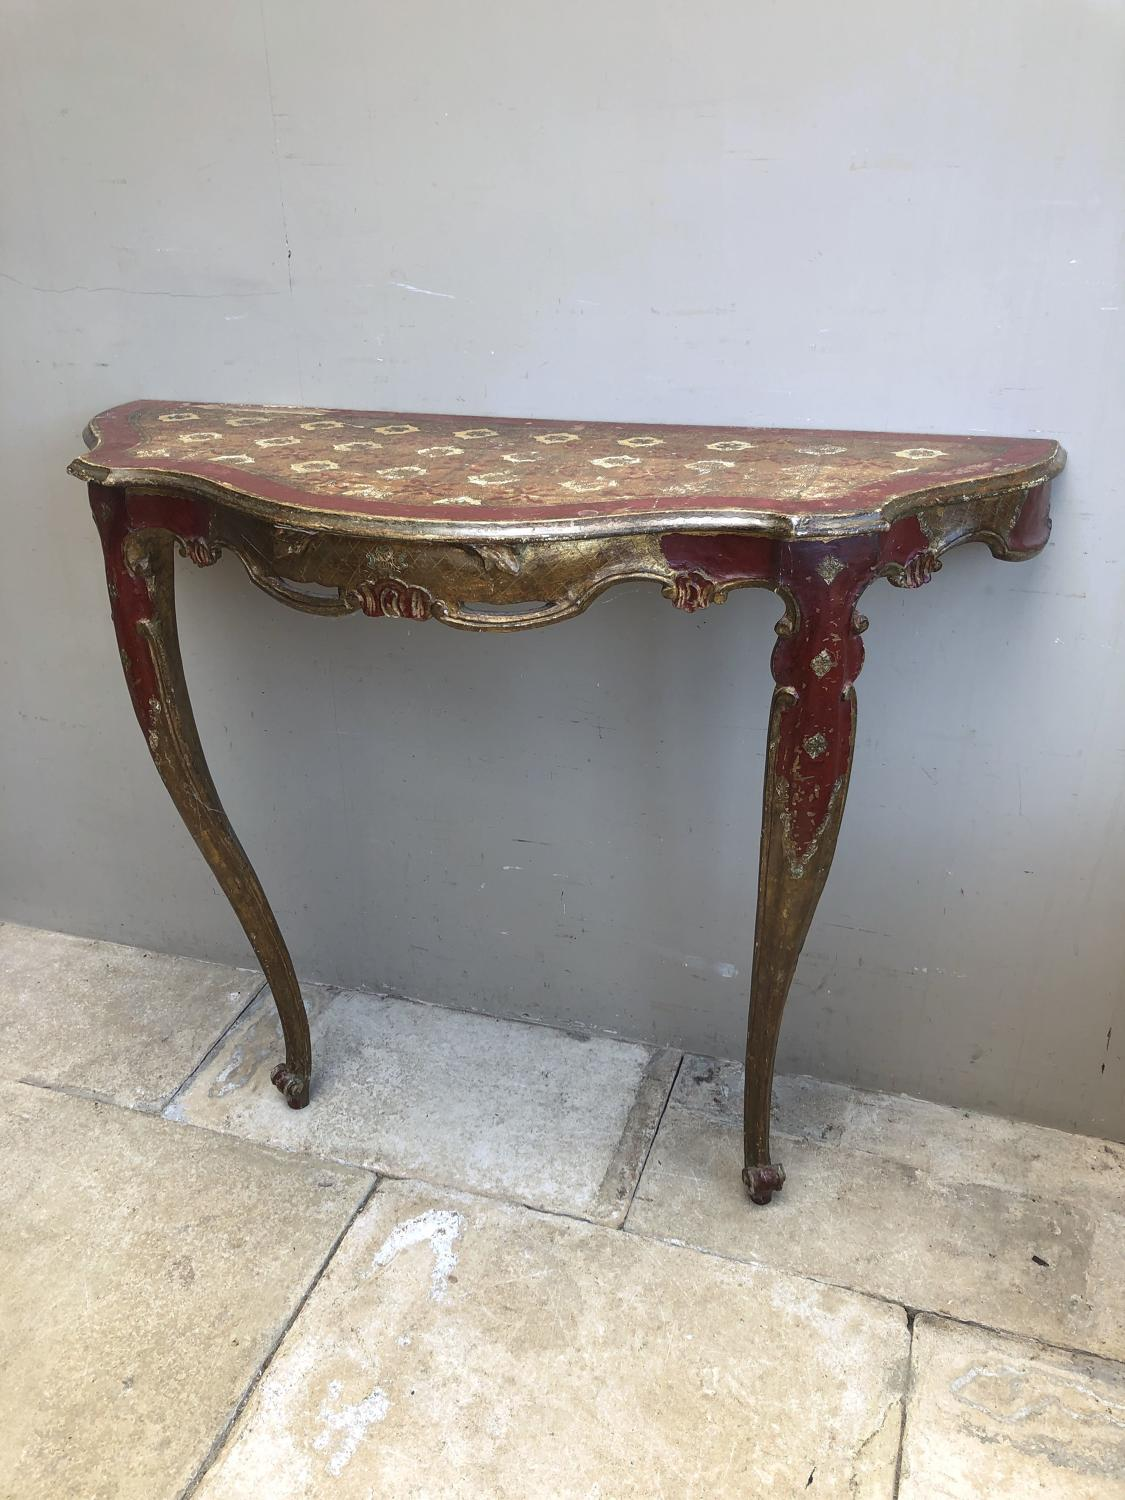 Antique Painted Pine Console Table c.1920